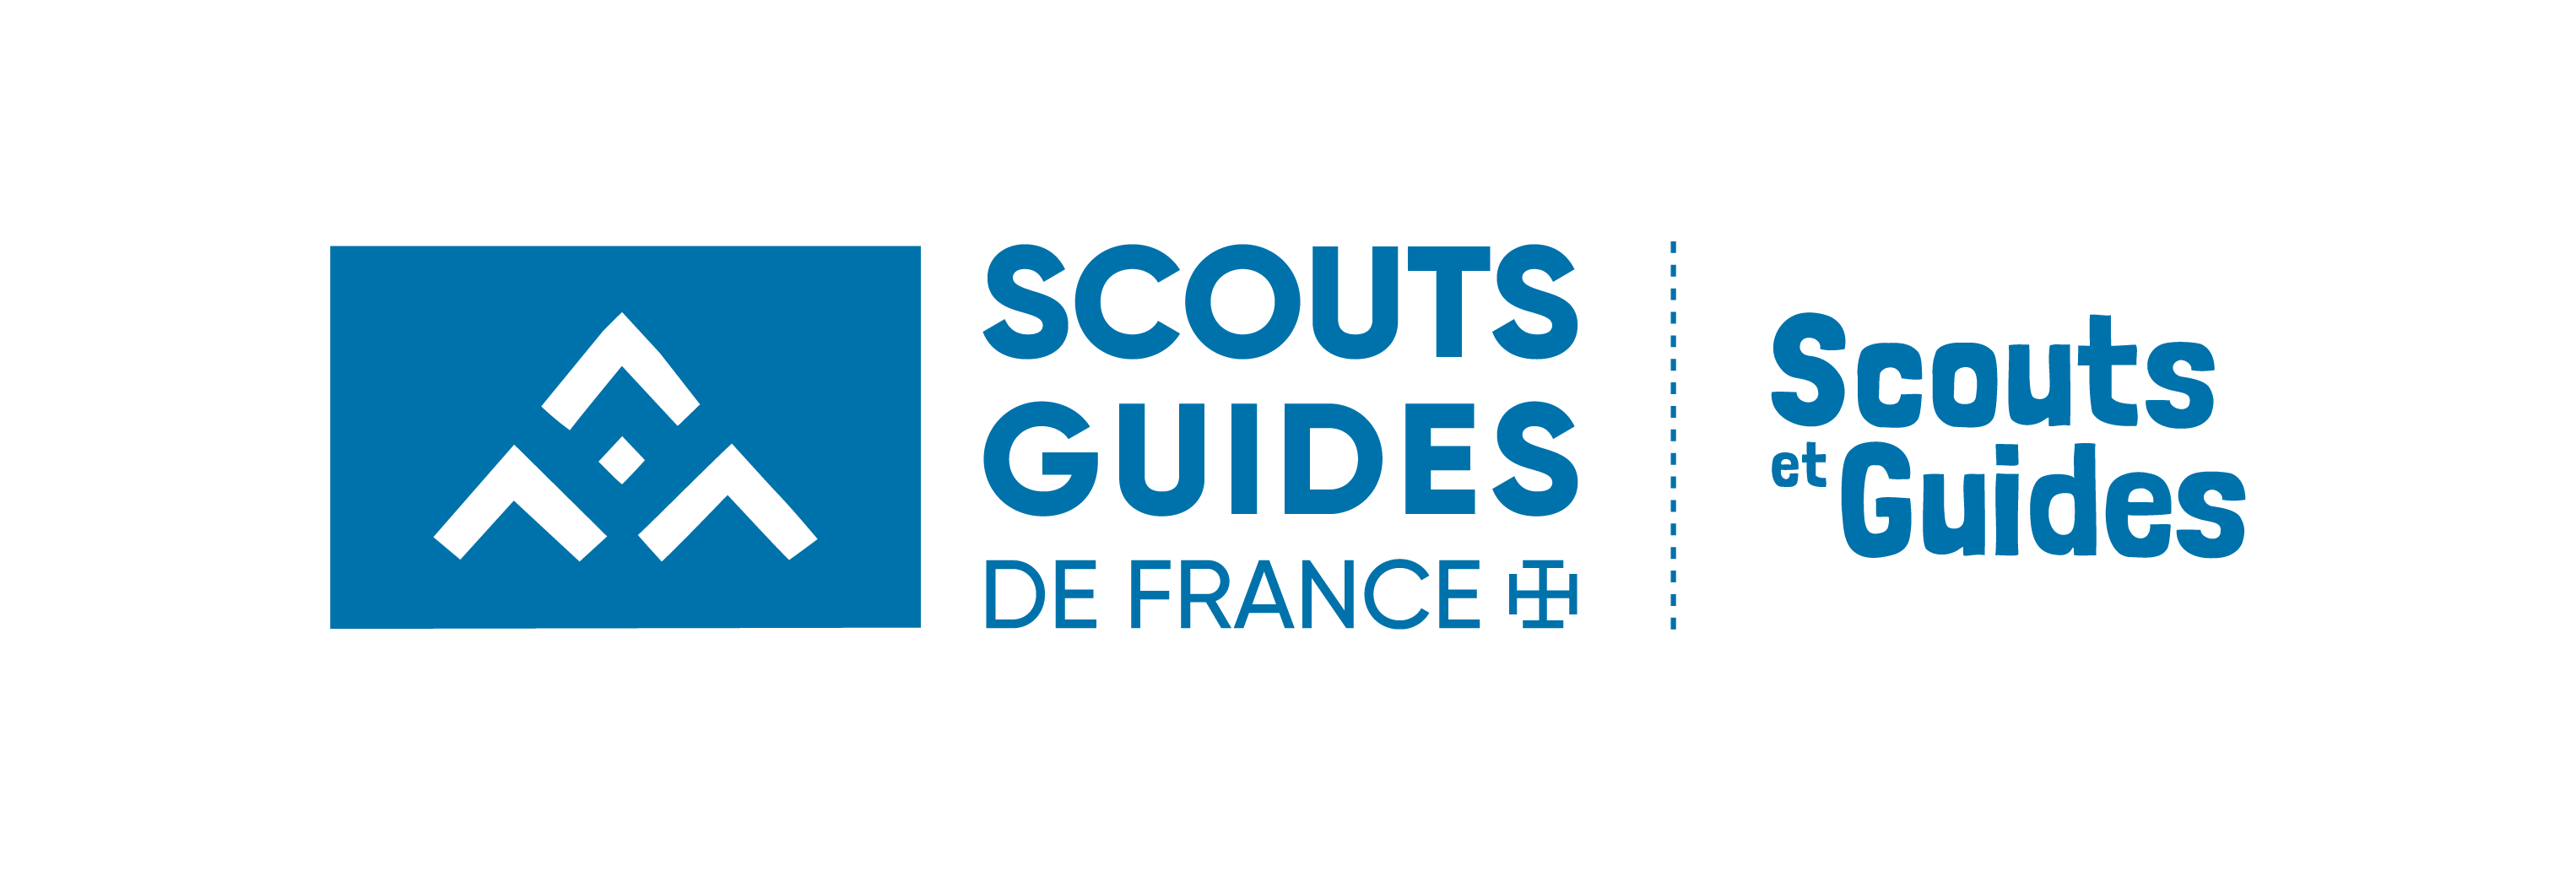 Scouts-Guides